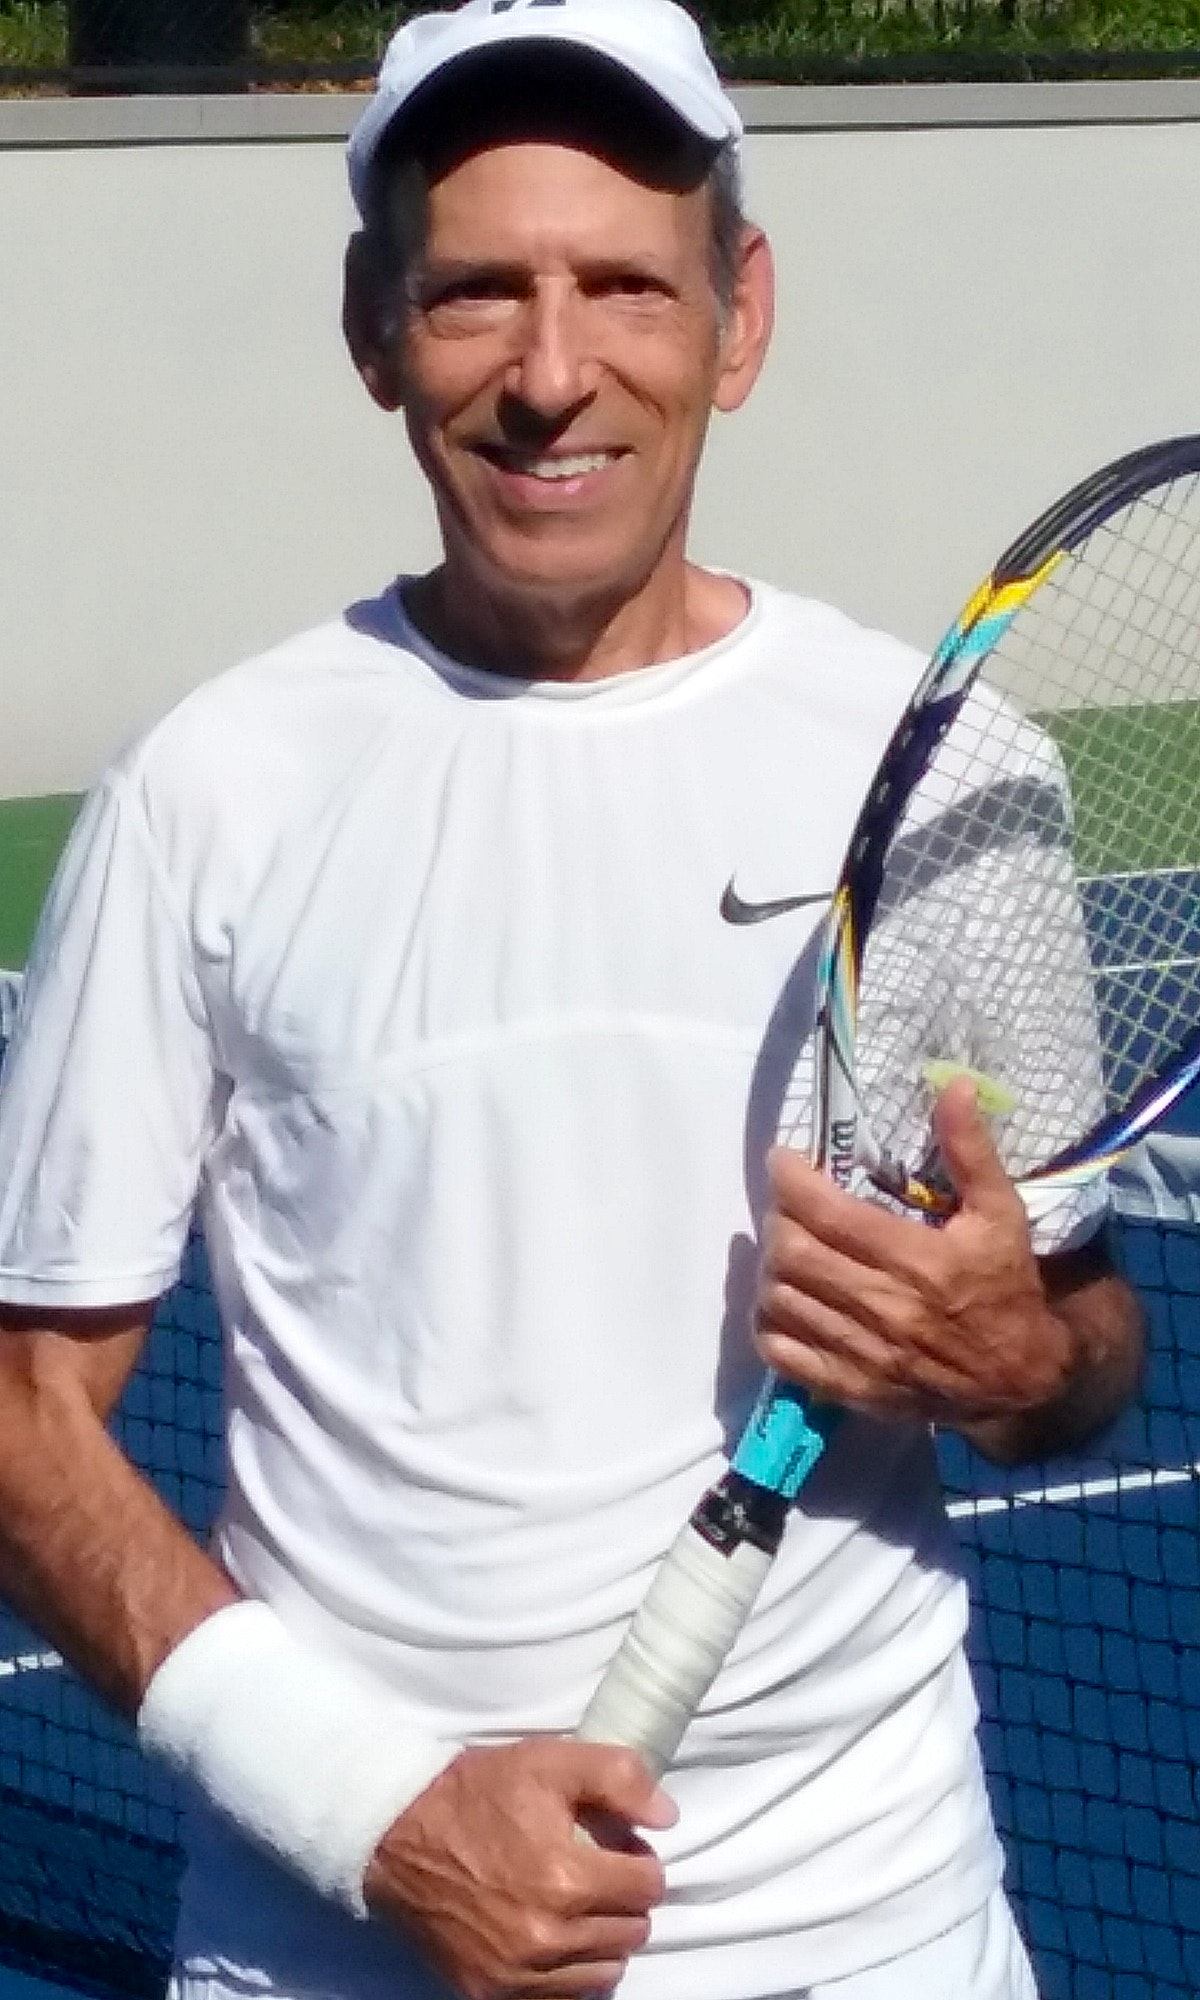 Jonny M. teaches tennis lessons in Brookhaven, GA